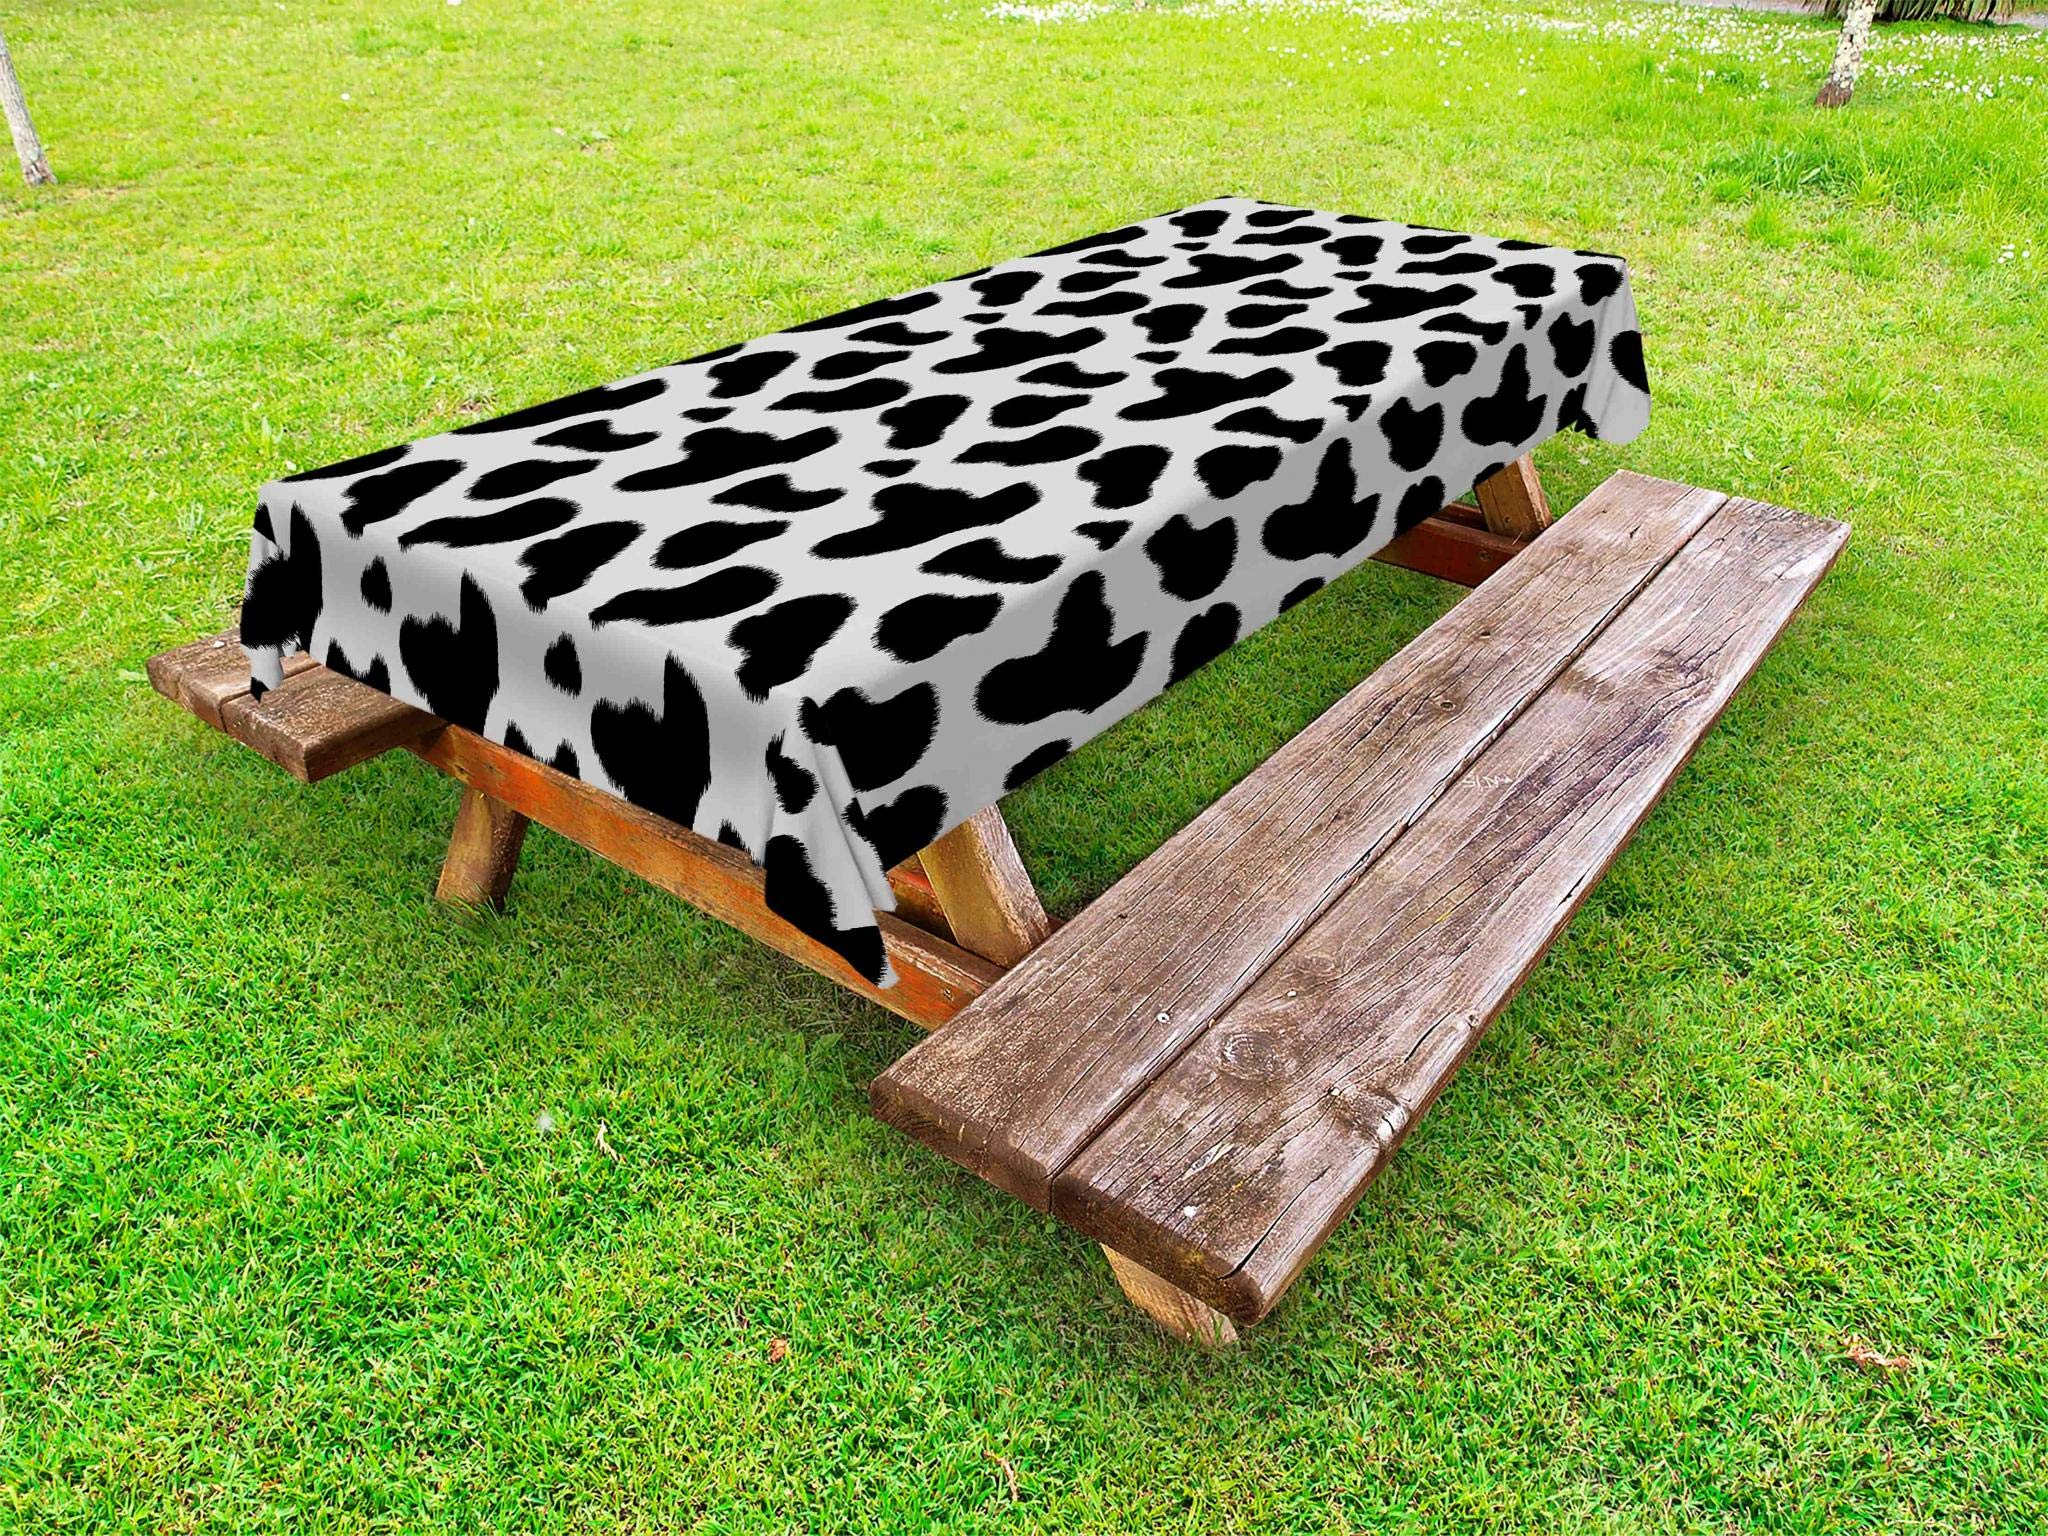 Ambesonne Cow Print Outdoor Tablecloth, Cow Hide Pattern with Black Spots Farm Life with Cattle Camouflage Animal Skin, Decorative Washable Picnic Table Cloth, 58 X 84 Inches, White Black